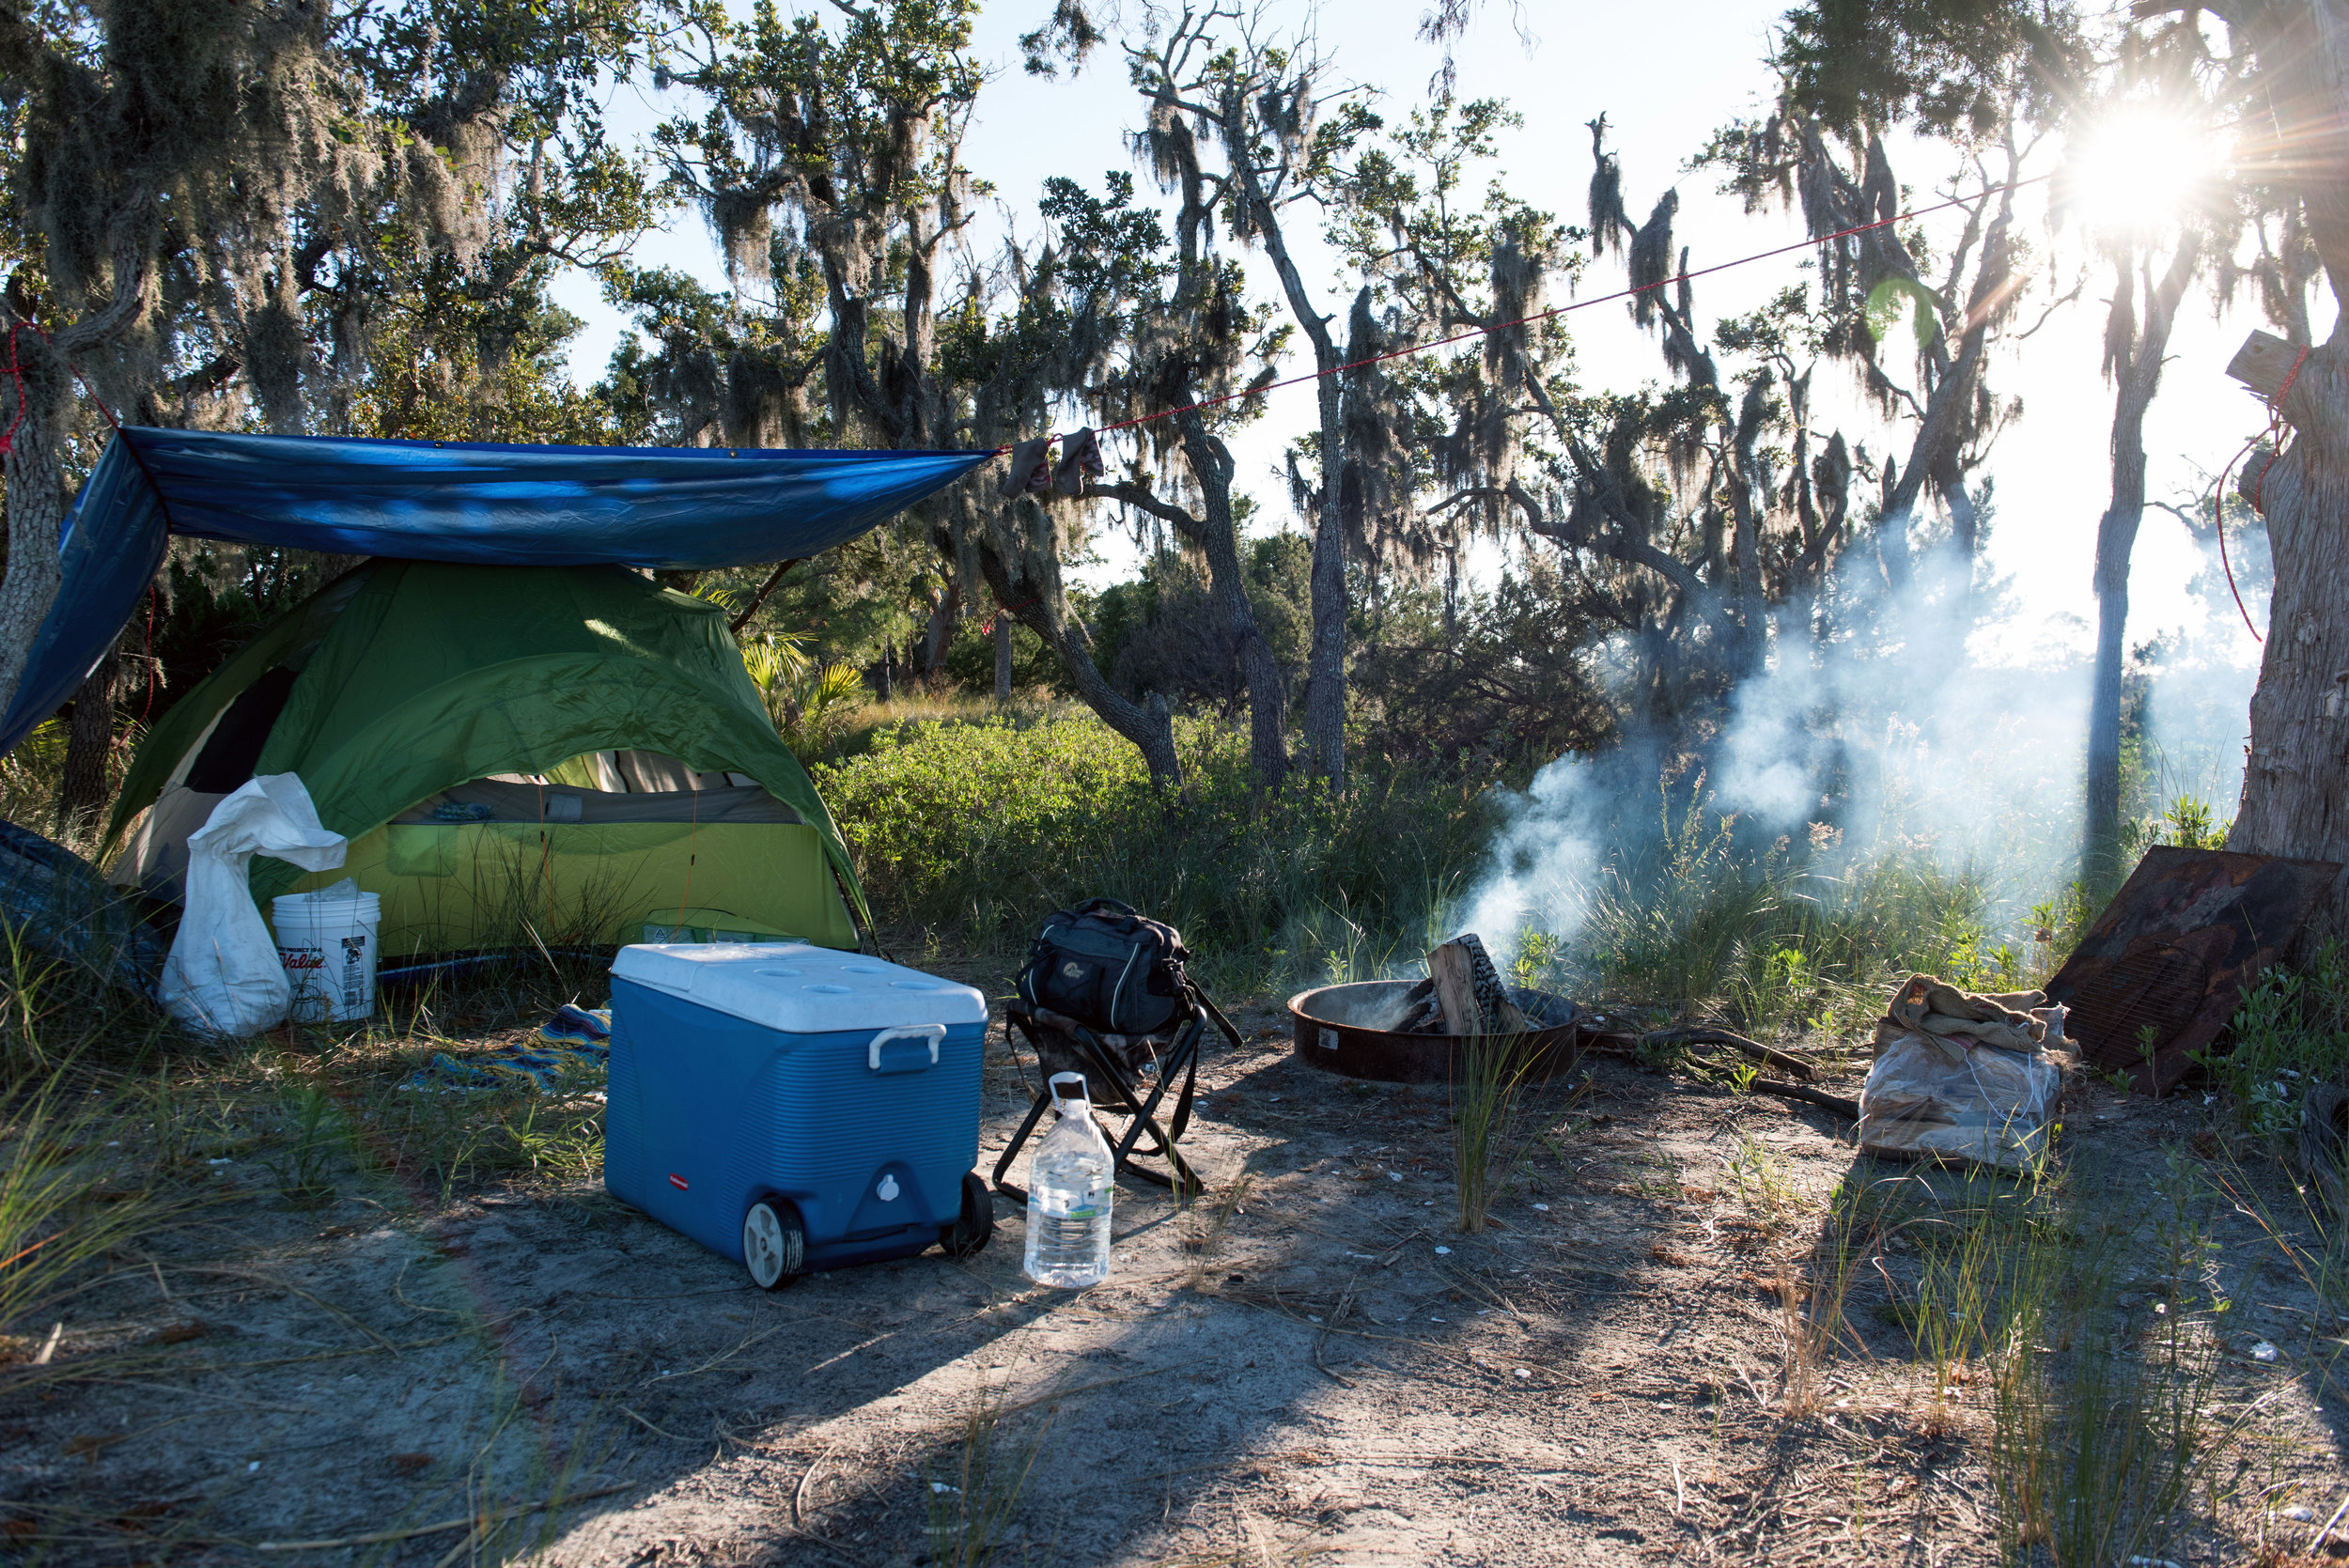 Camp site at Otter Island.